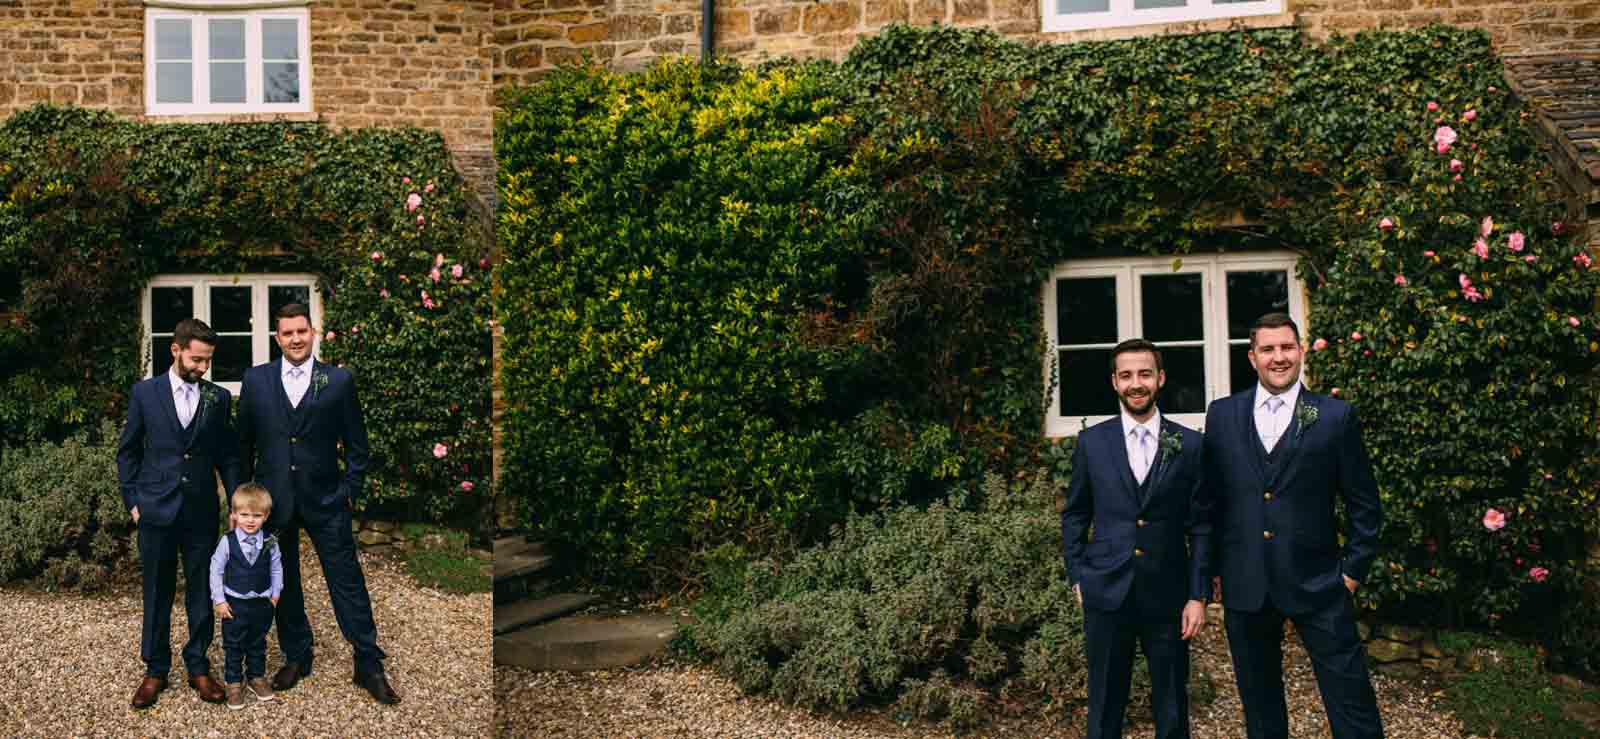 Dodmoor-House-Wedding-Photography-Northampton-031